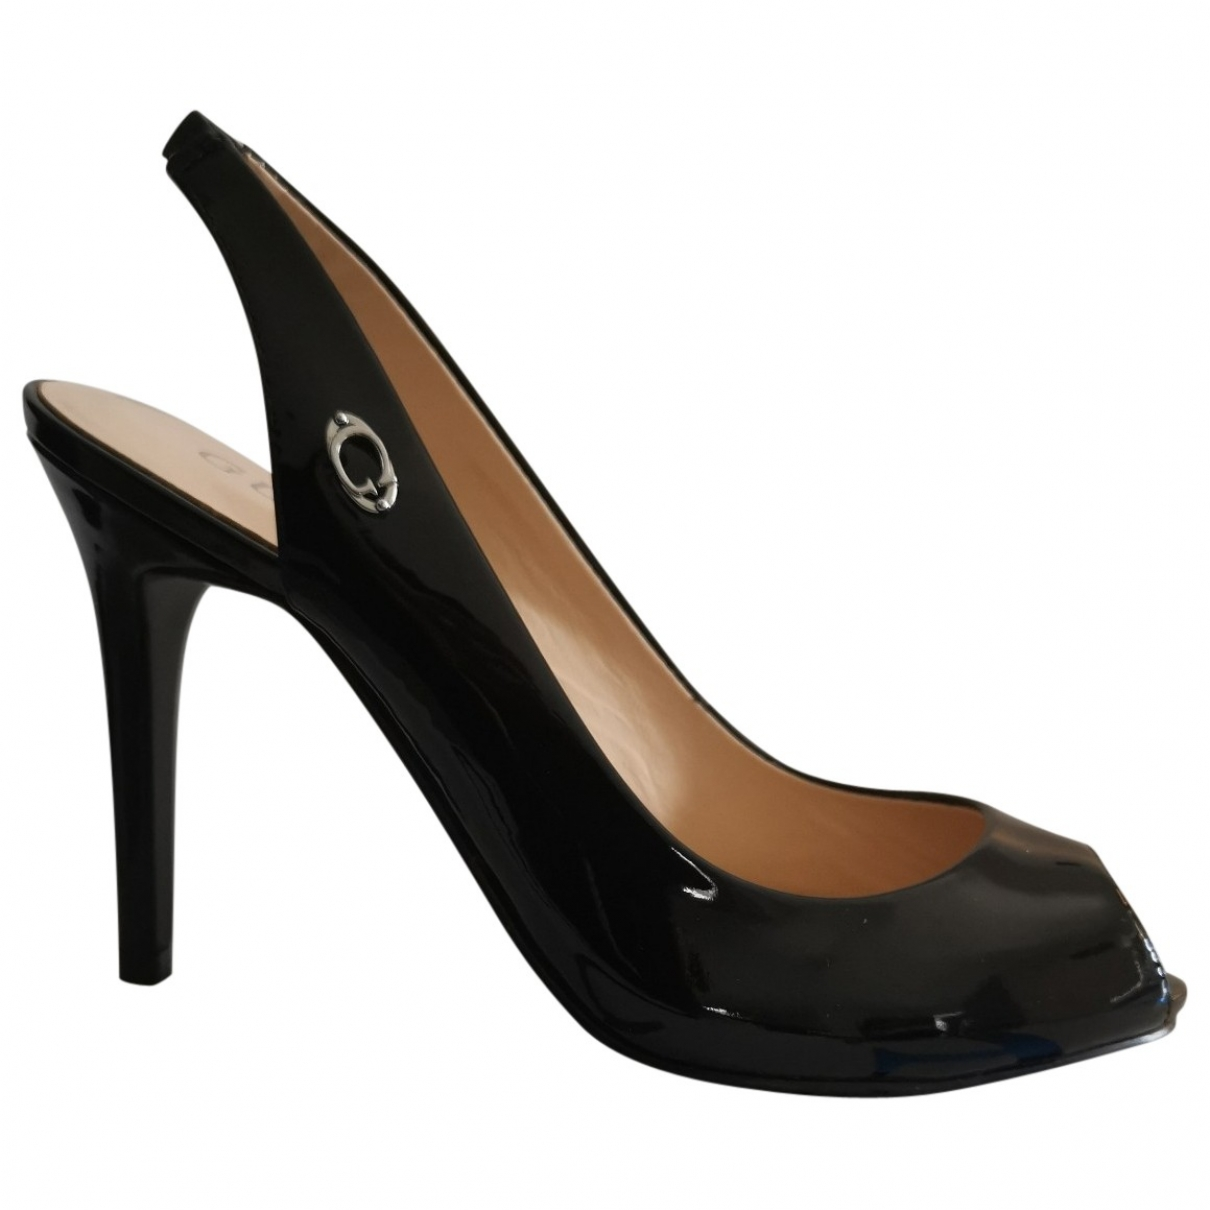 Guess \N Black Patent leather Heels for Women 35 EU